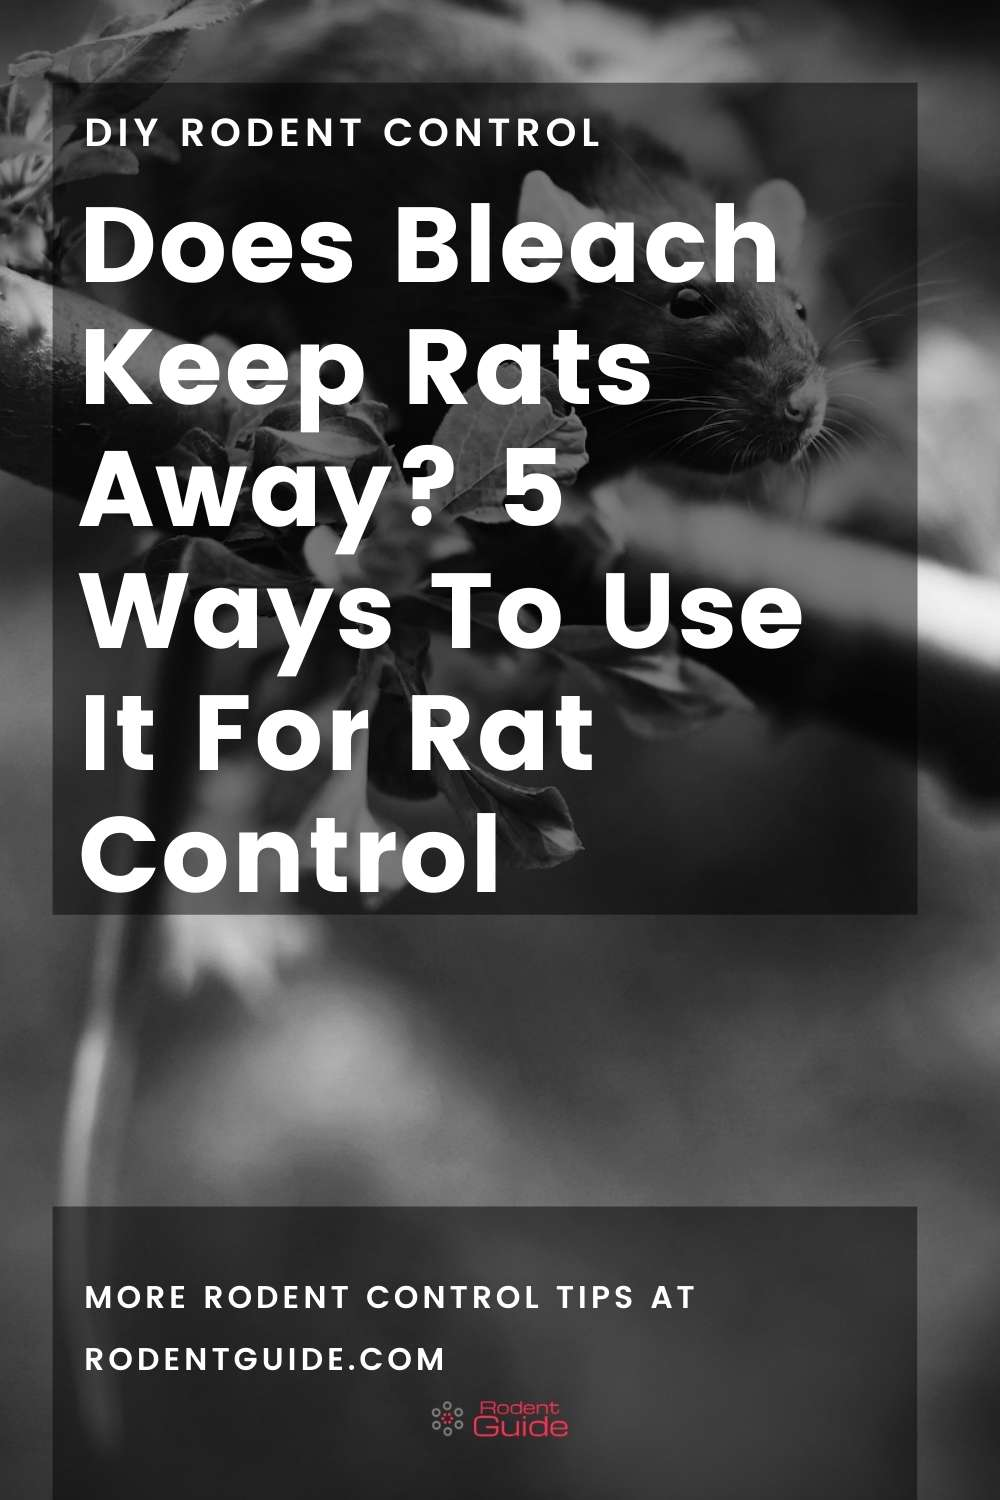 Does Bleach Keep Rats Away_ 5 Ways To Use It For Rat Control